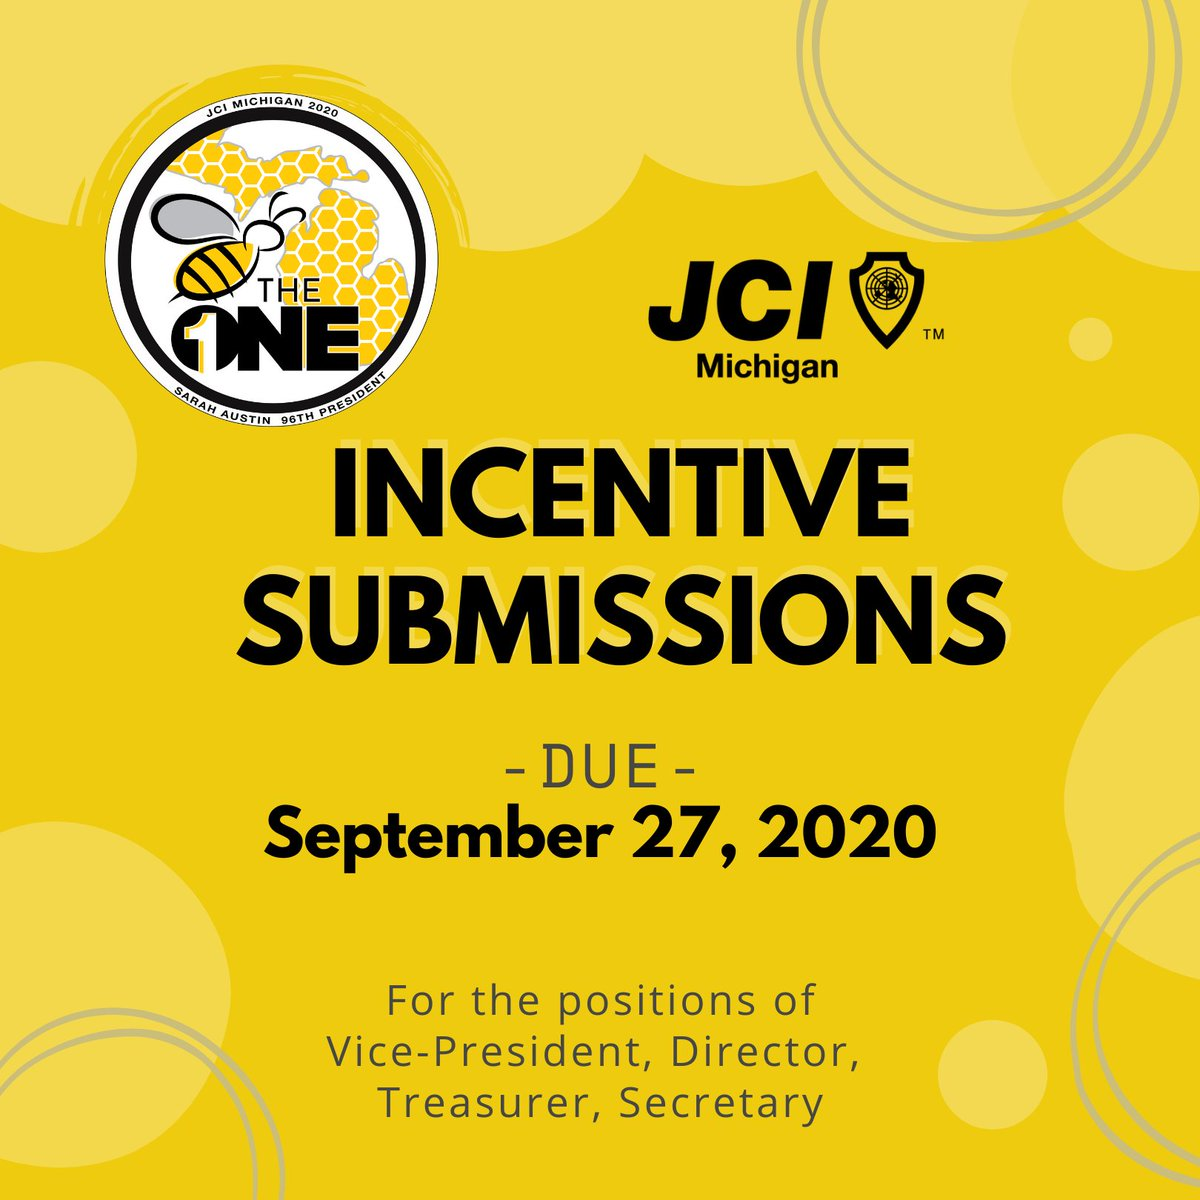 Local Chapter officers, it is your time to submit incentives from T2! Please get them in by September 27th to be eligible for awards!  https://t.co/IfUjucDYFn  #betheone #jcimi #jci #michigan #leadership https://t.co/oYhJ6kyJoj